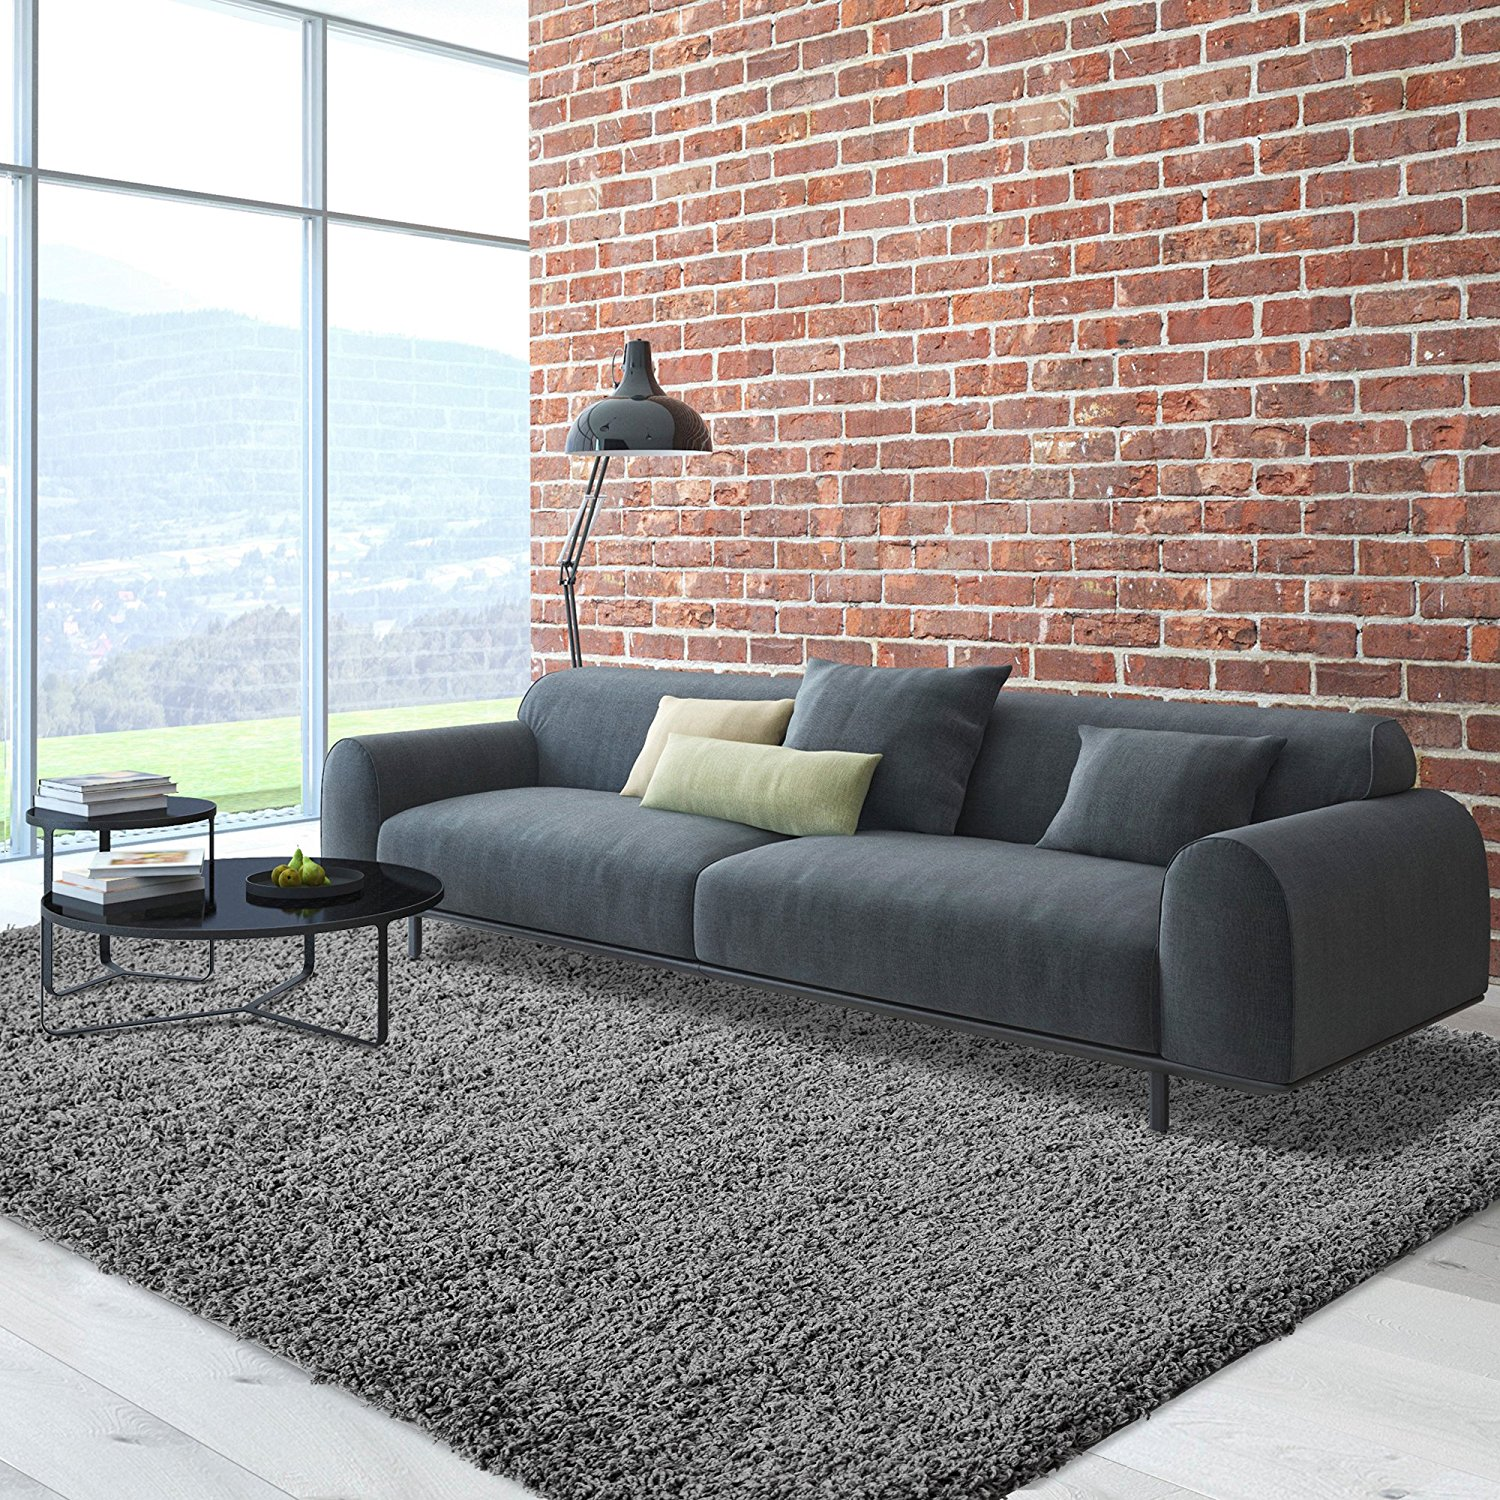 iCustomRug Cozy Soft And Plush Pile, 5ft0in x 7ft0in ( 5X7 ) Shag Area Rug In Charcoal / Dark Grey